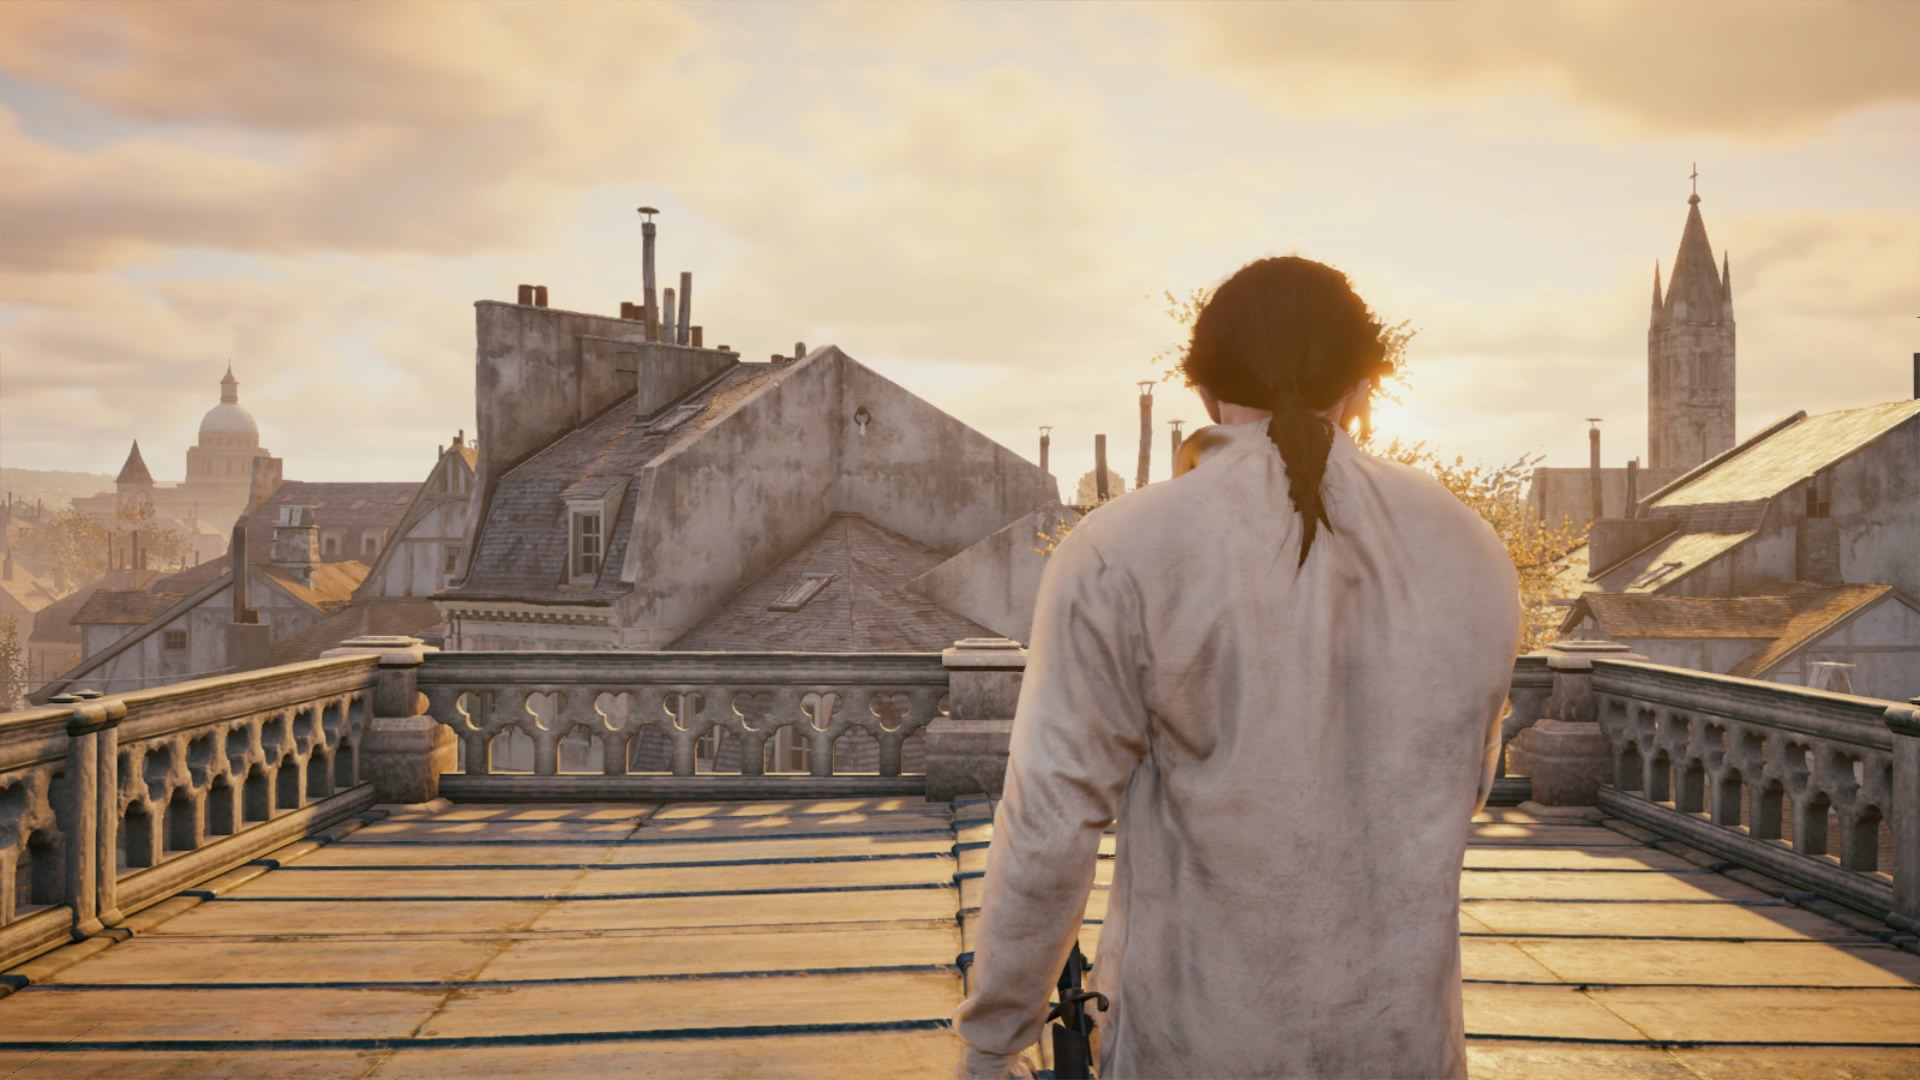 In-game obrázky z Assassin's Creed: Unity 101853